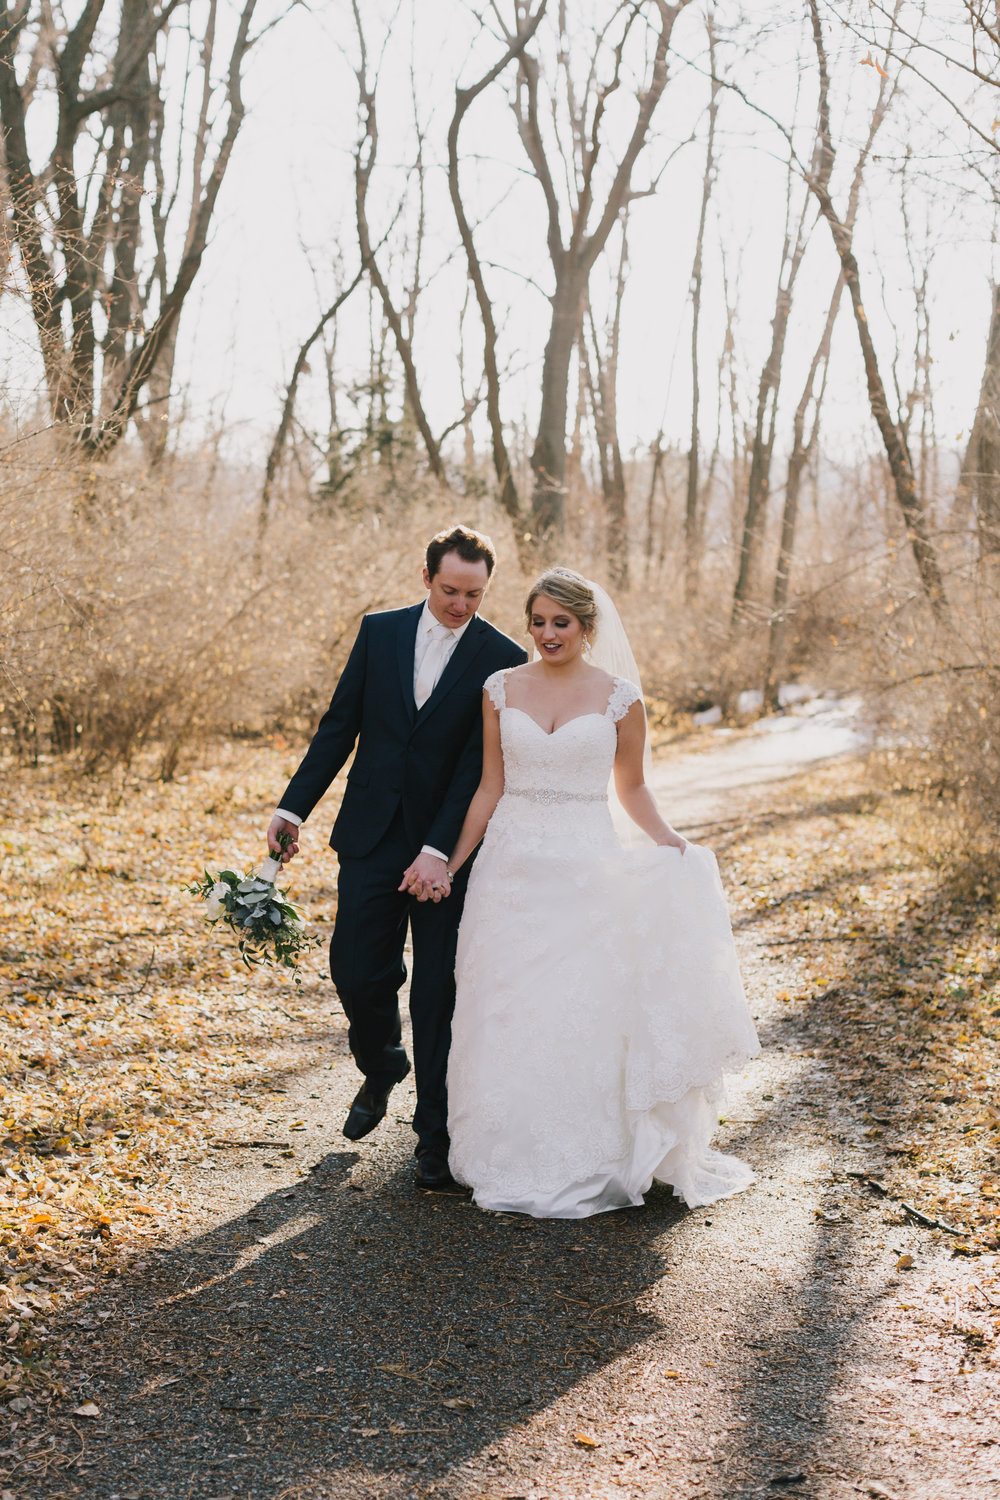 alyssa barletter photography omaha nebraska wedding photographer winter-19.jpg